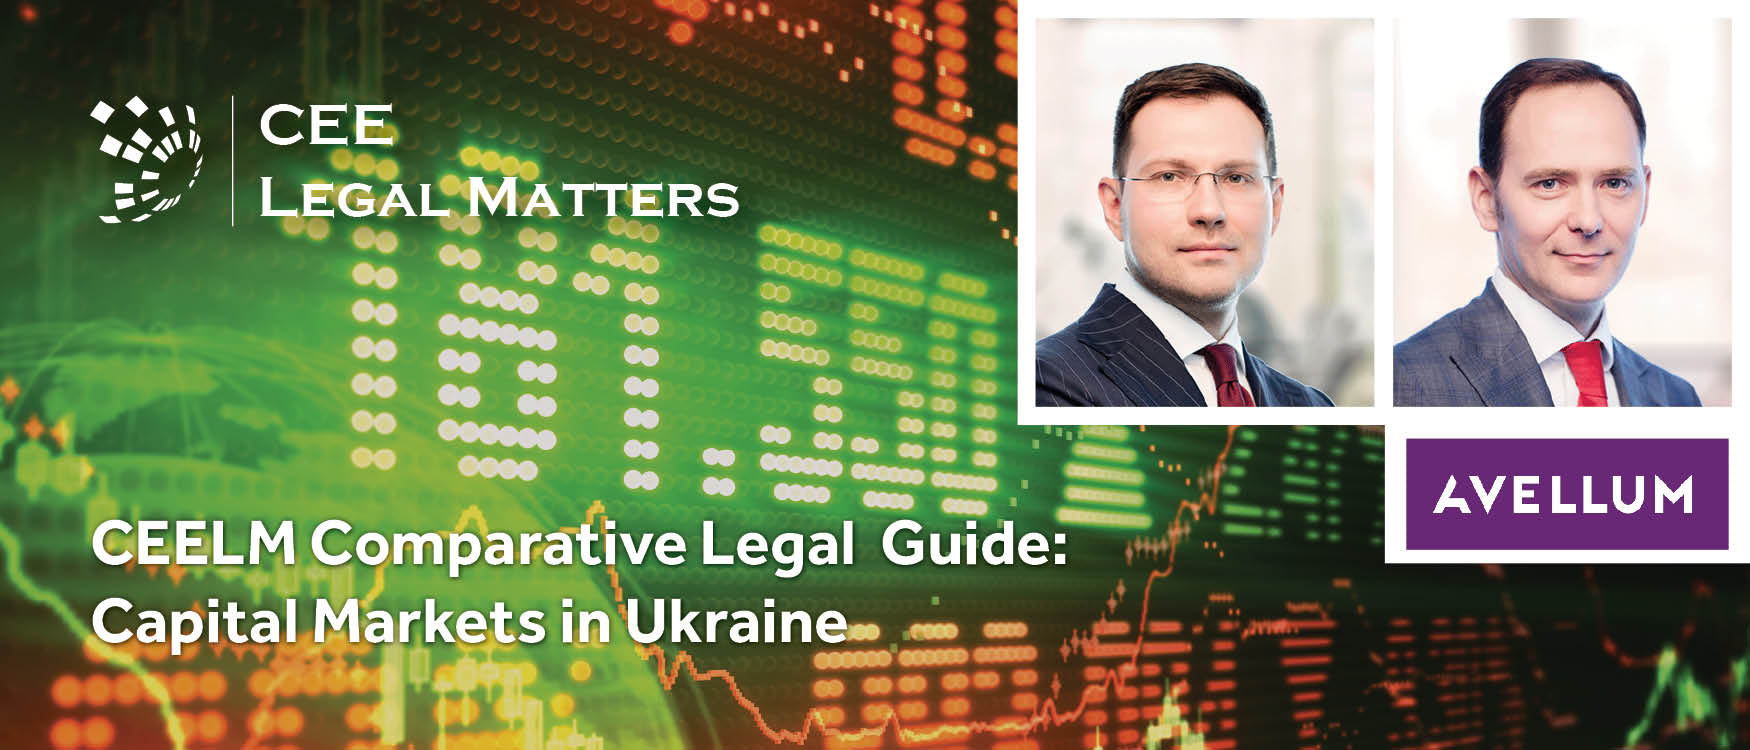 Capital Markets in Ukraine